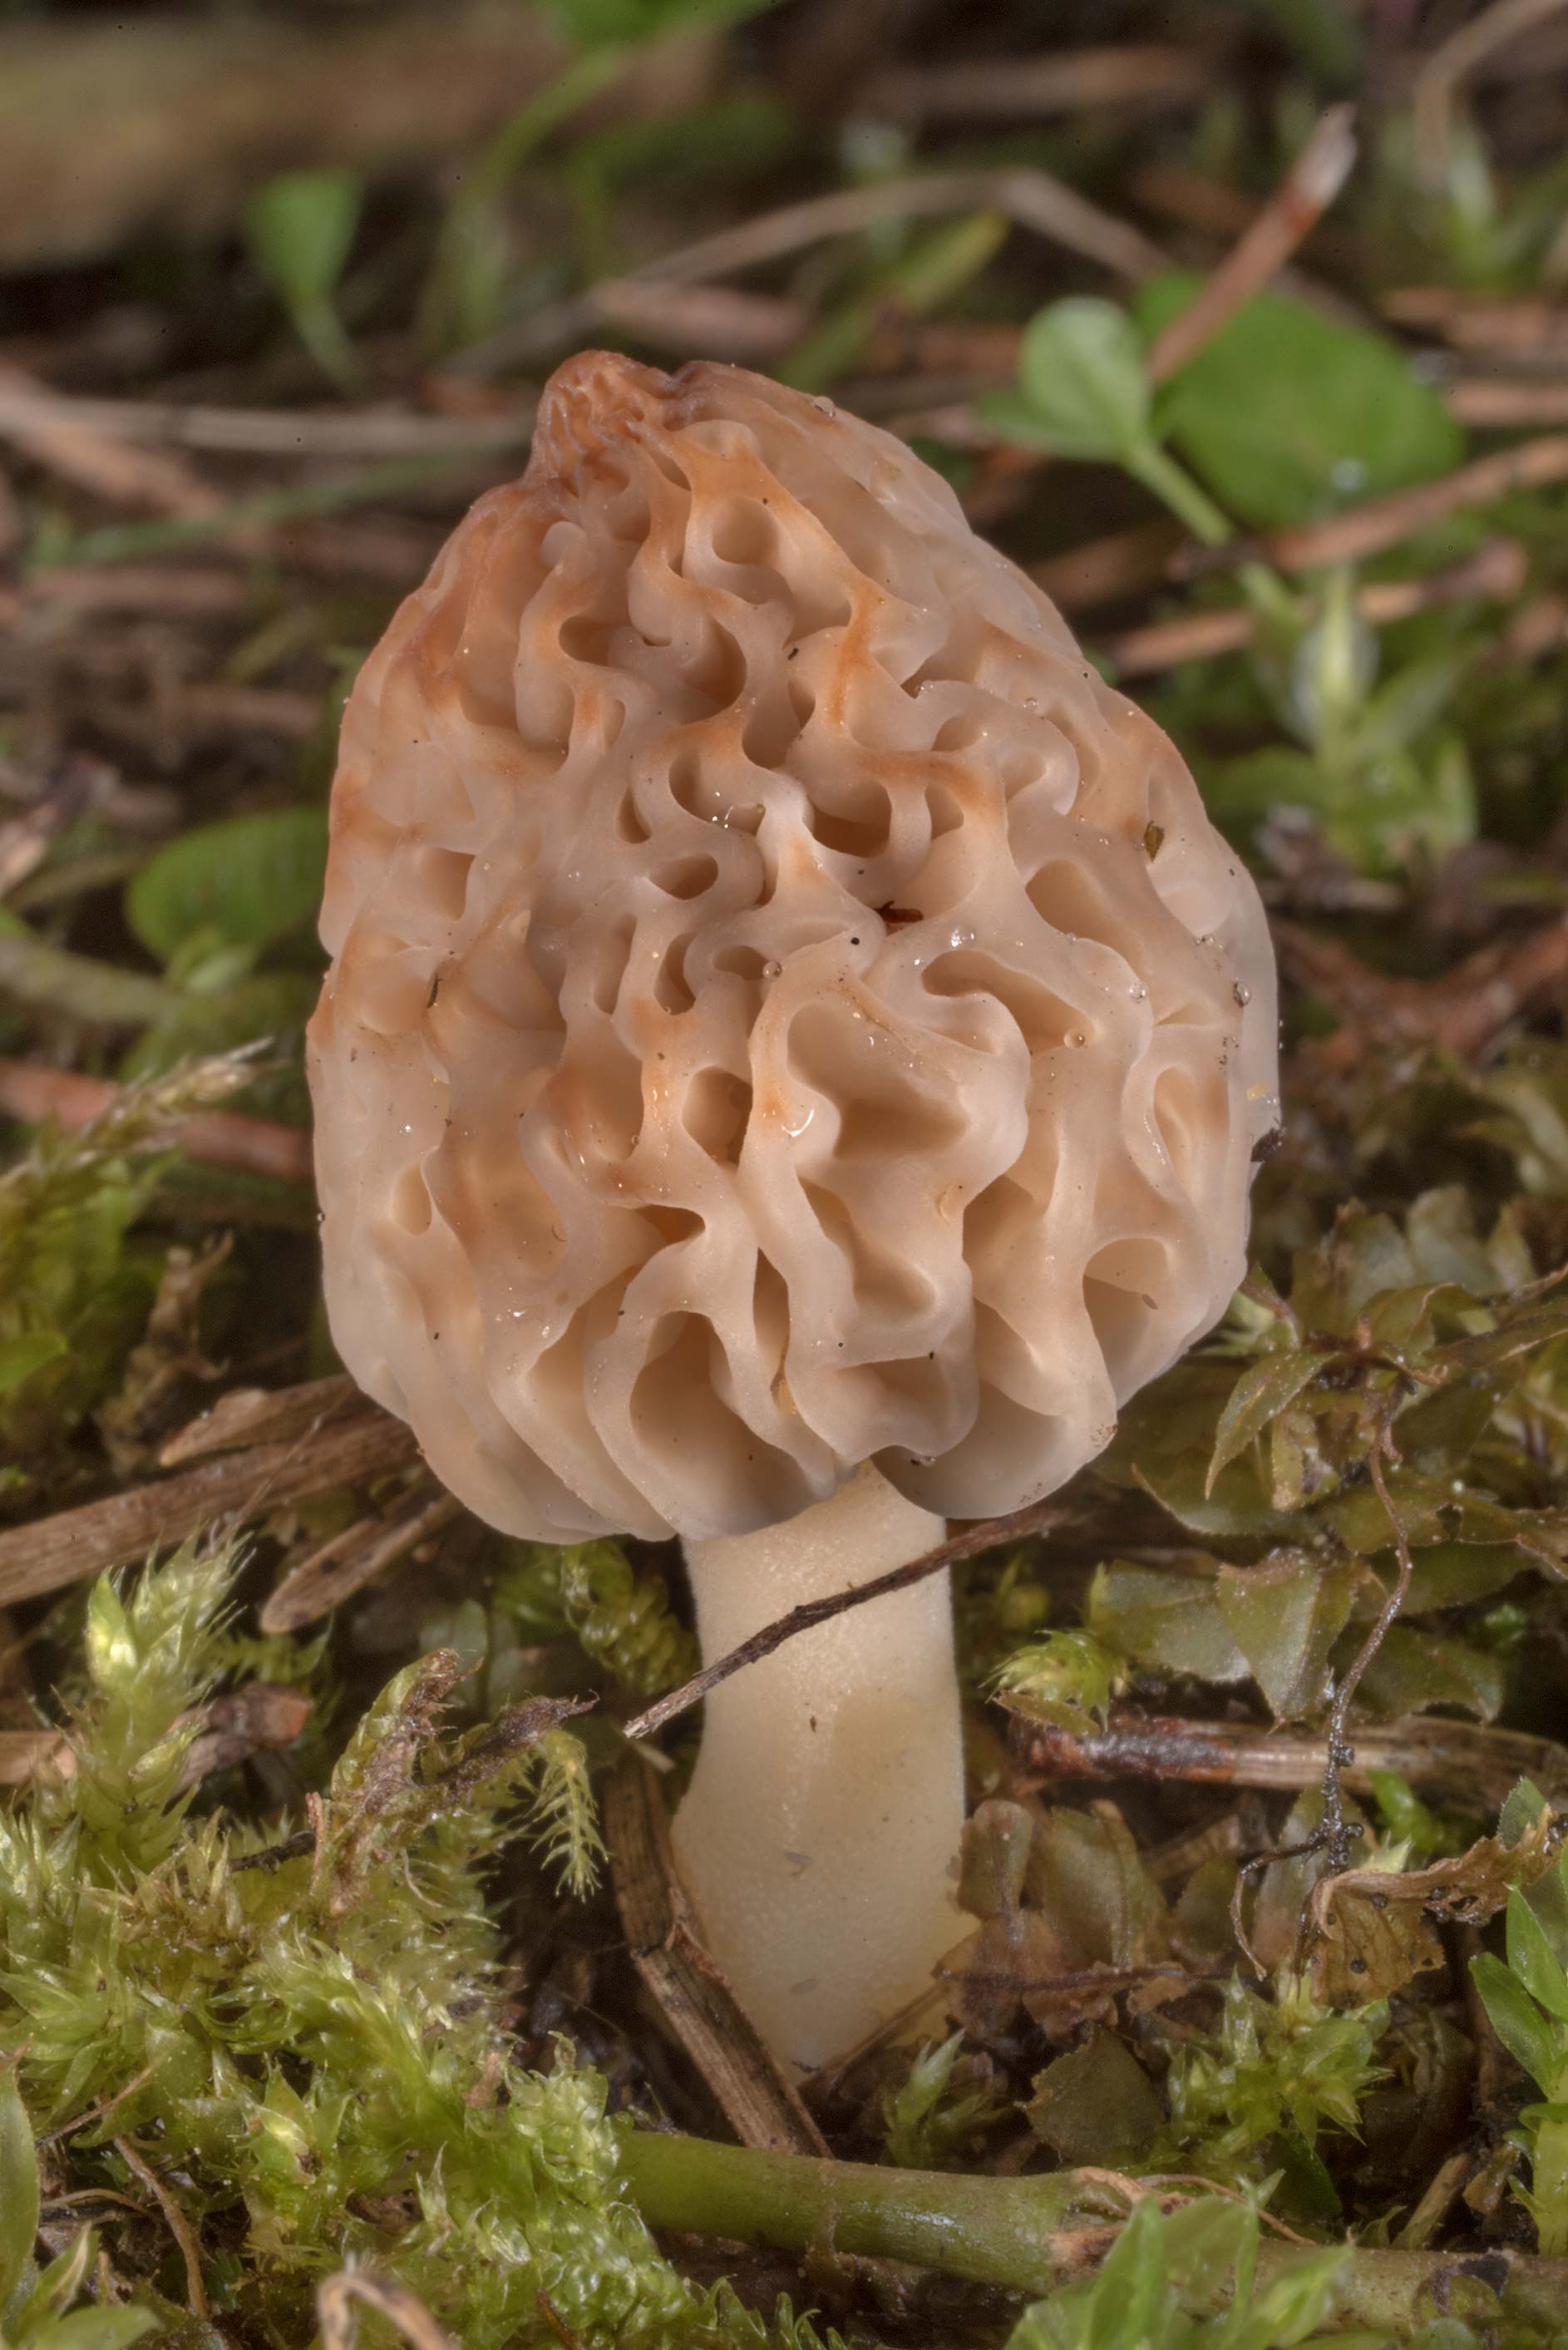 White Morel mushroom (Morchella deliciosa) on...north-west from St.Petersburg, Russia